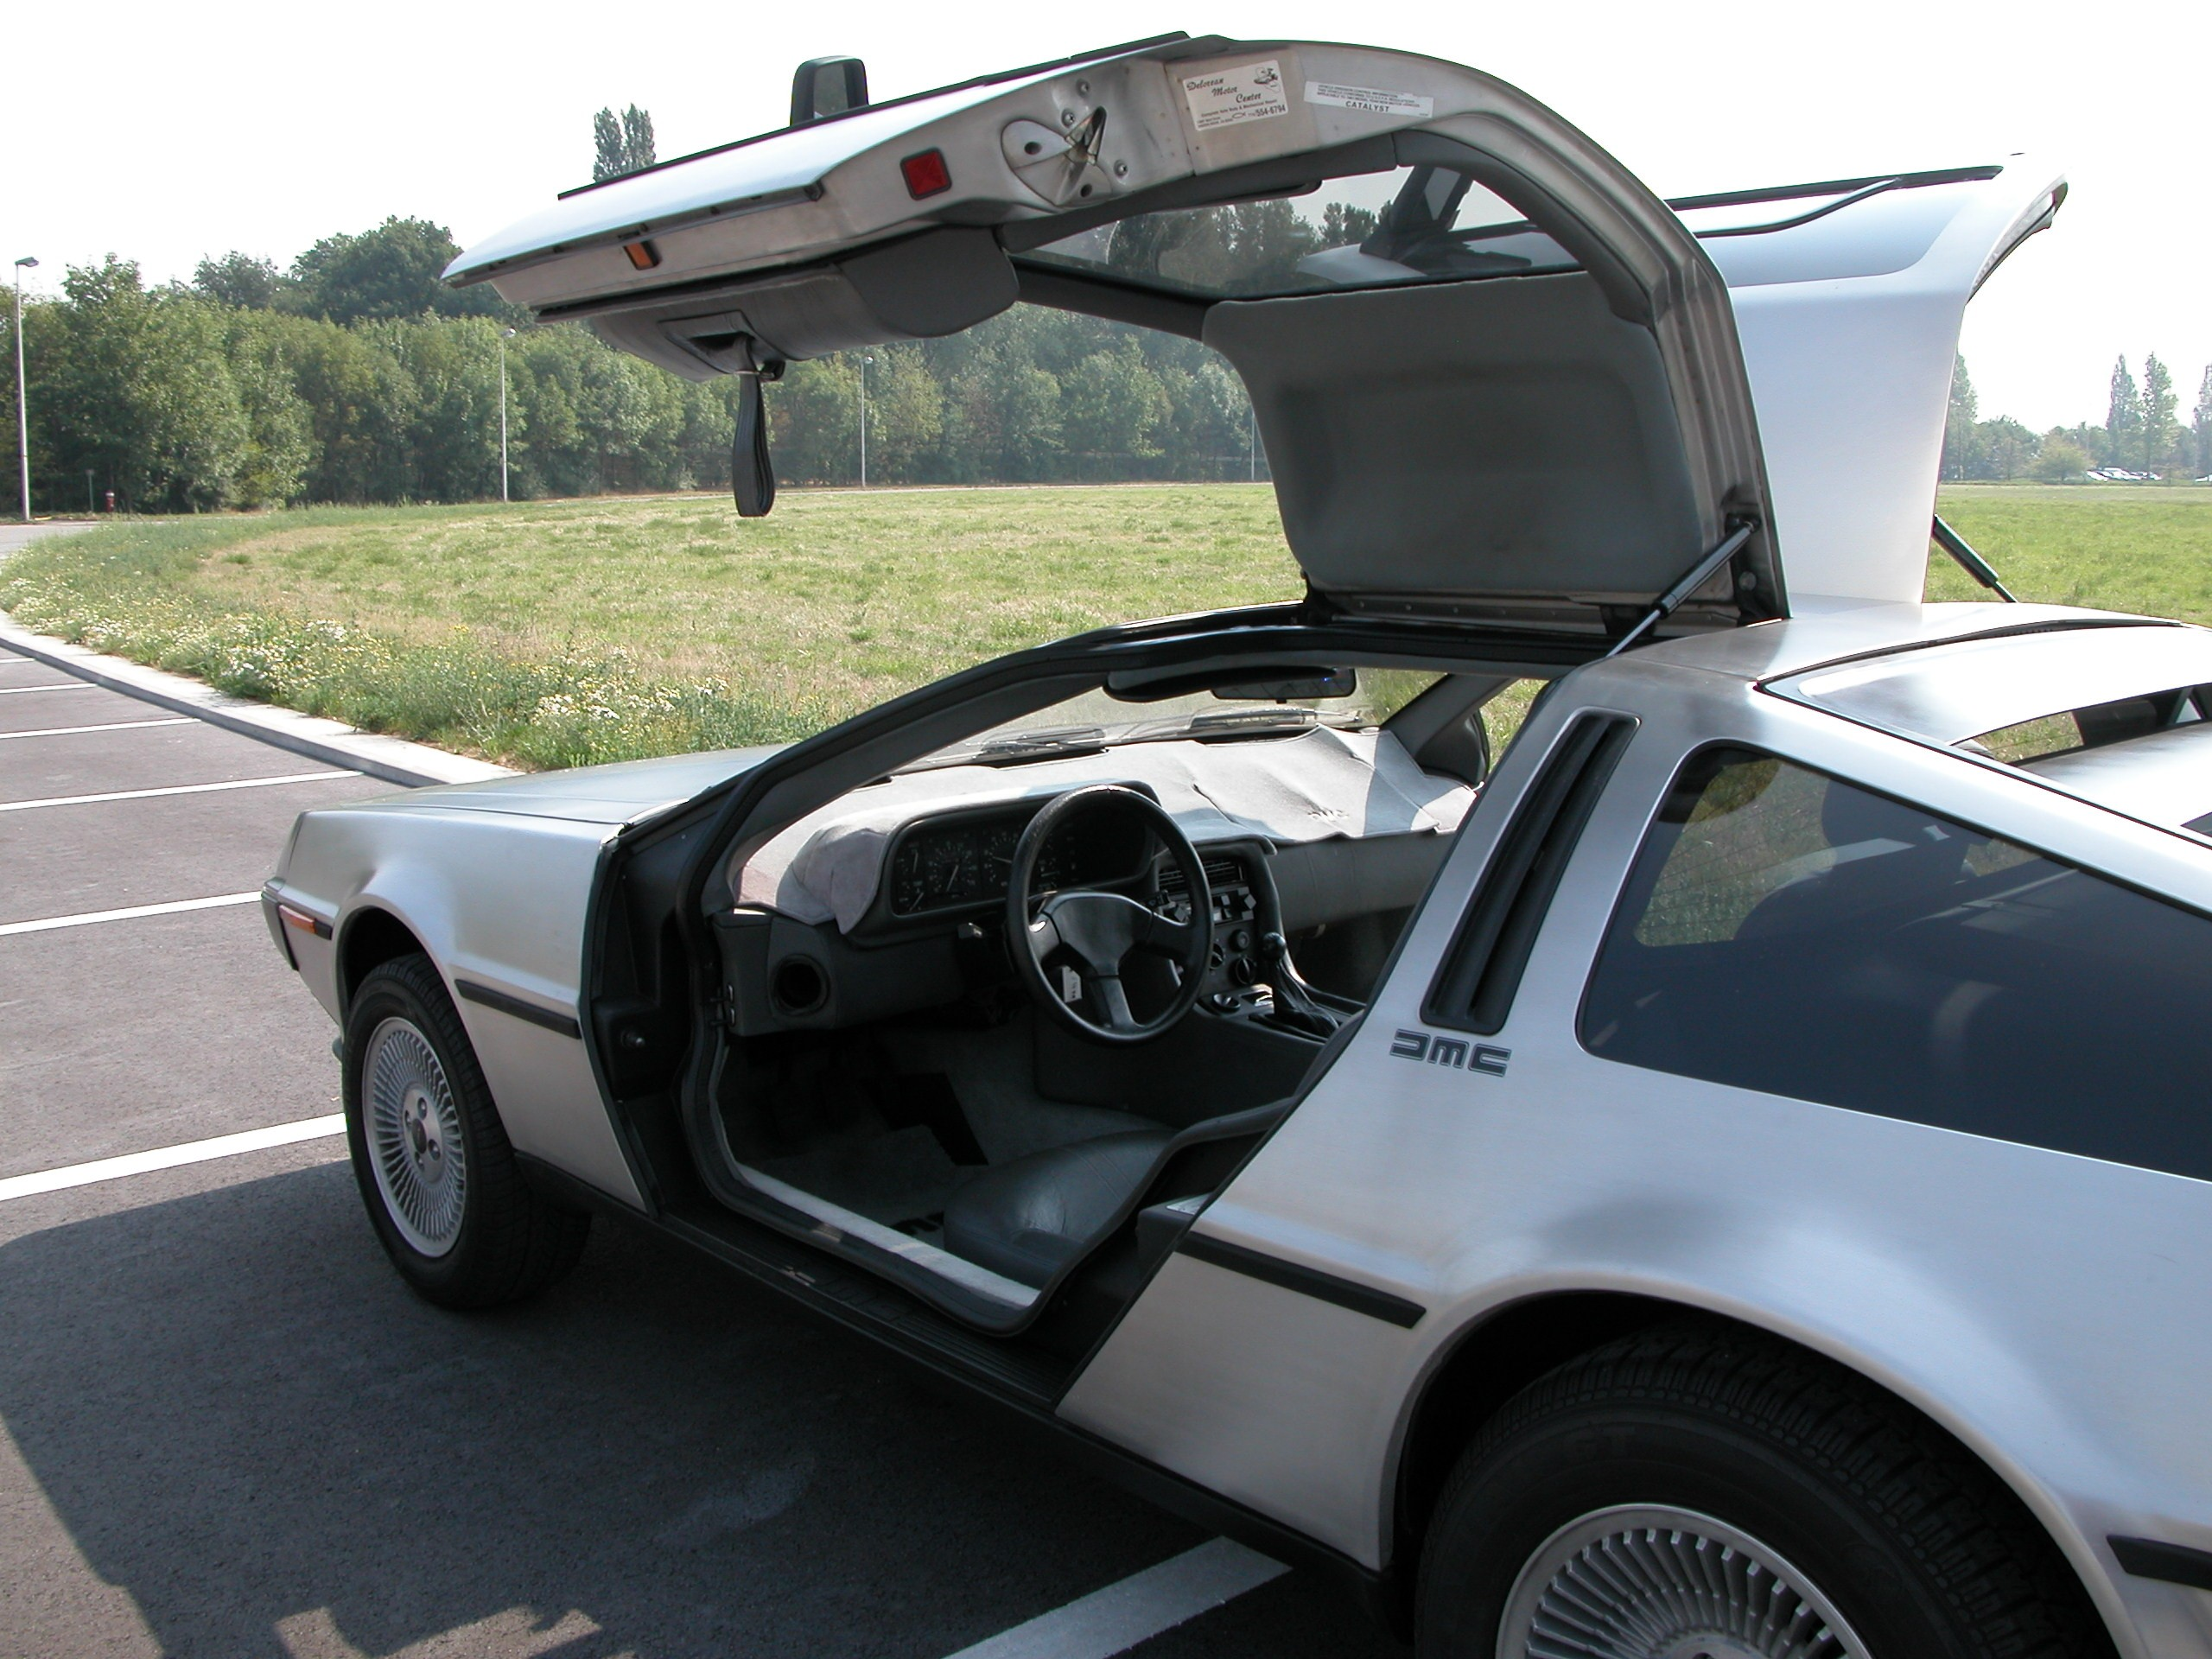 one more 1981 DELOREAN DMC 12